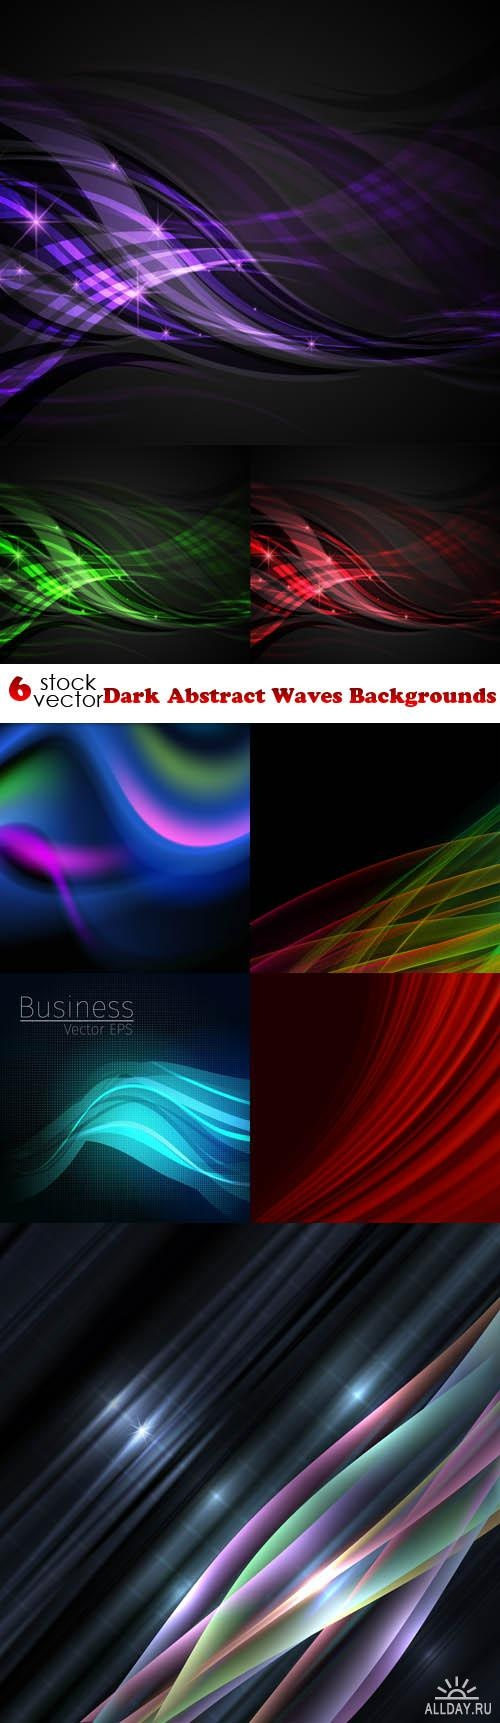 Dark Abstract Waves Backgrounds ((aitff (13 files)